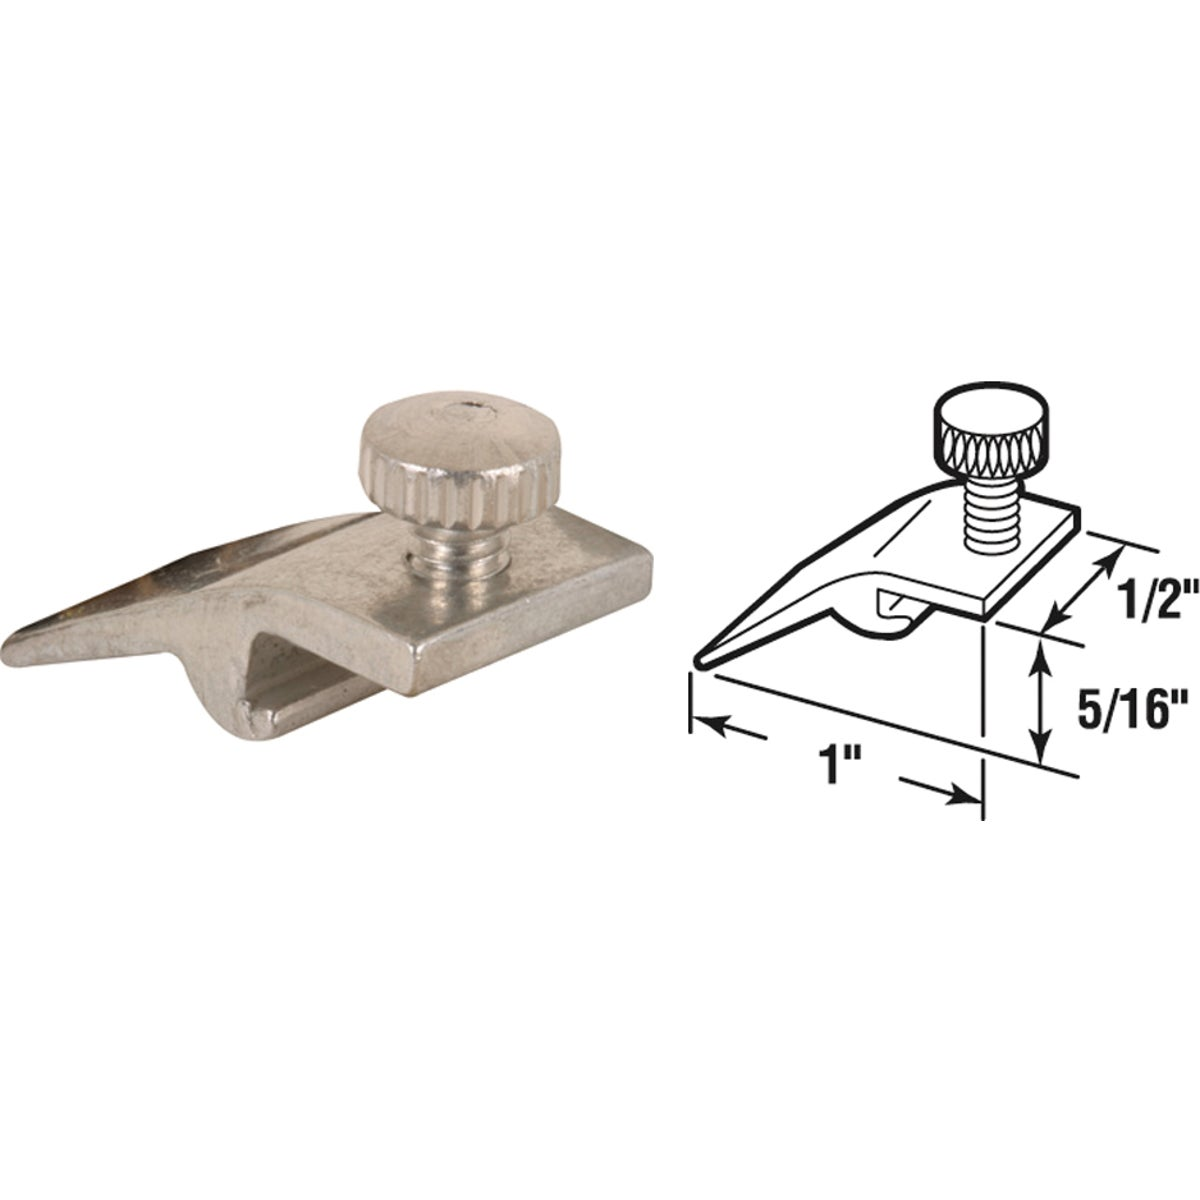 STORM WINDOW PANEL CLIPS - 181043 by Prime Line Products